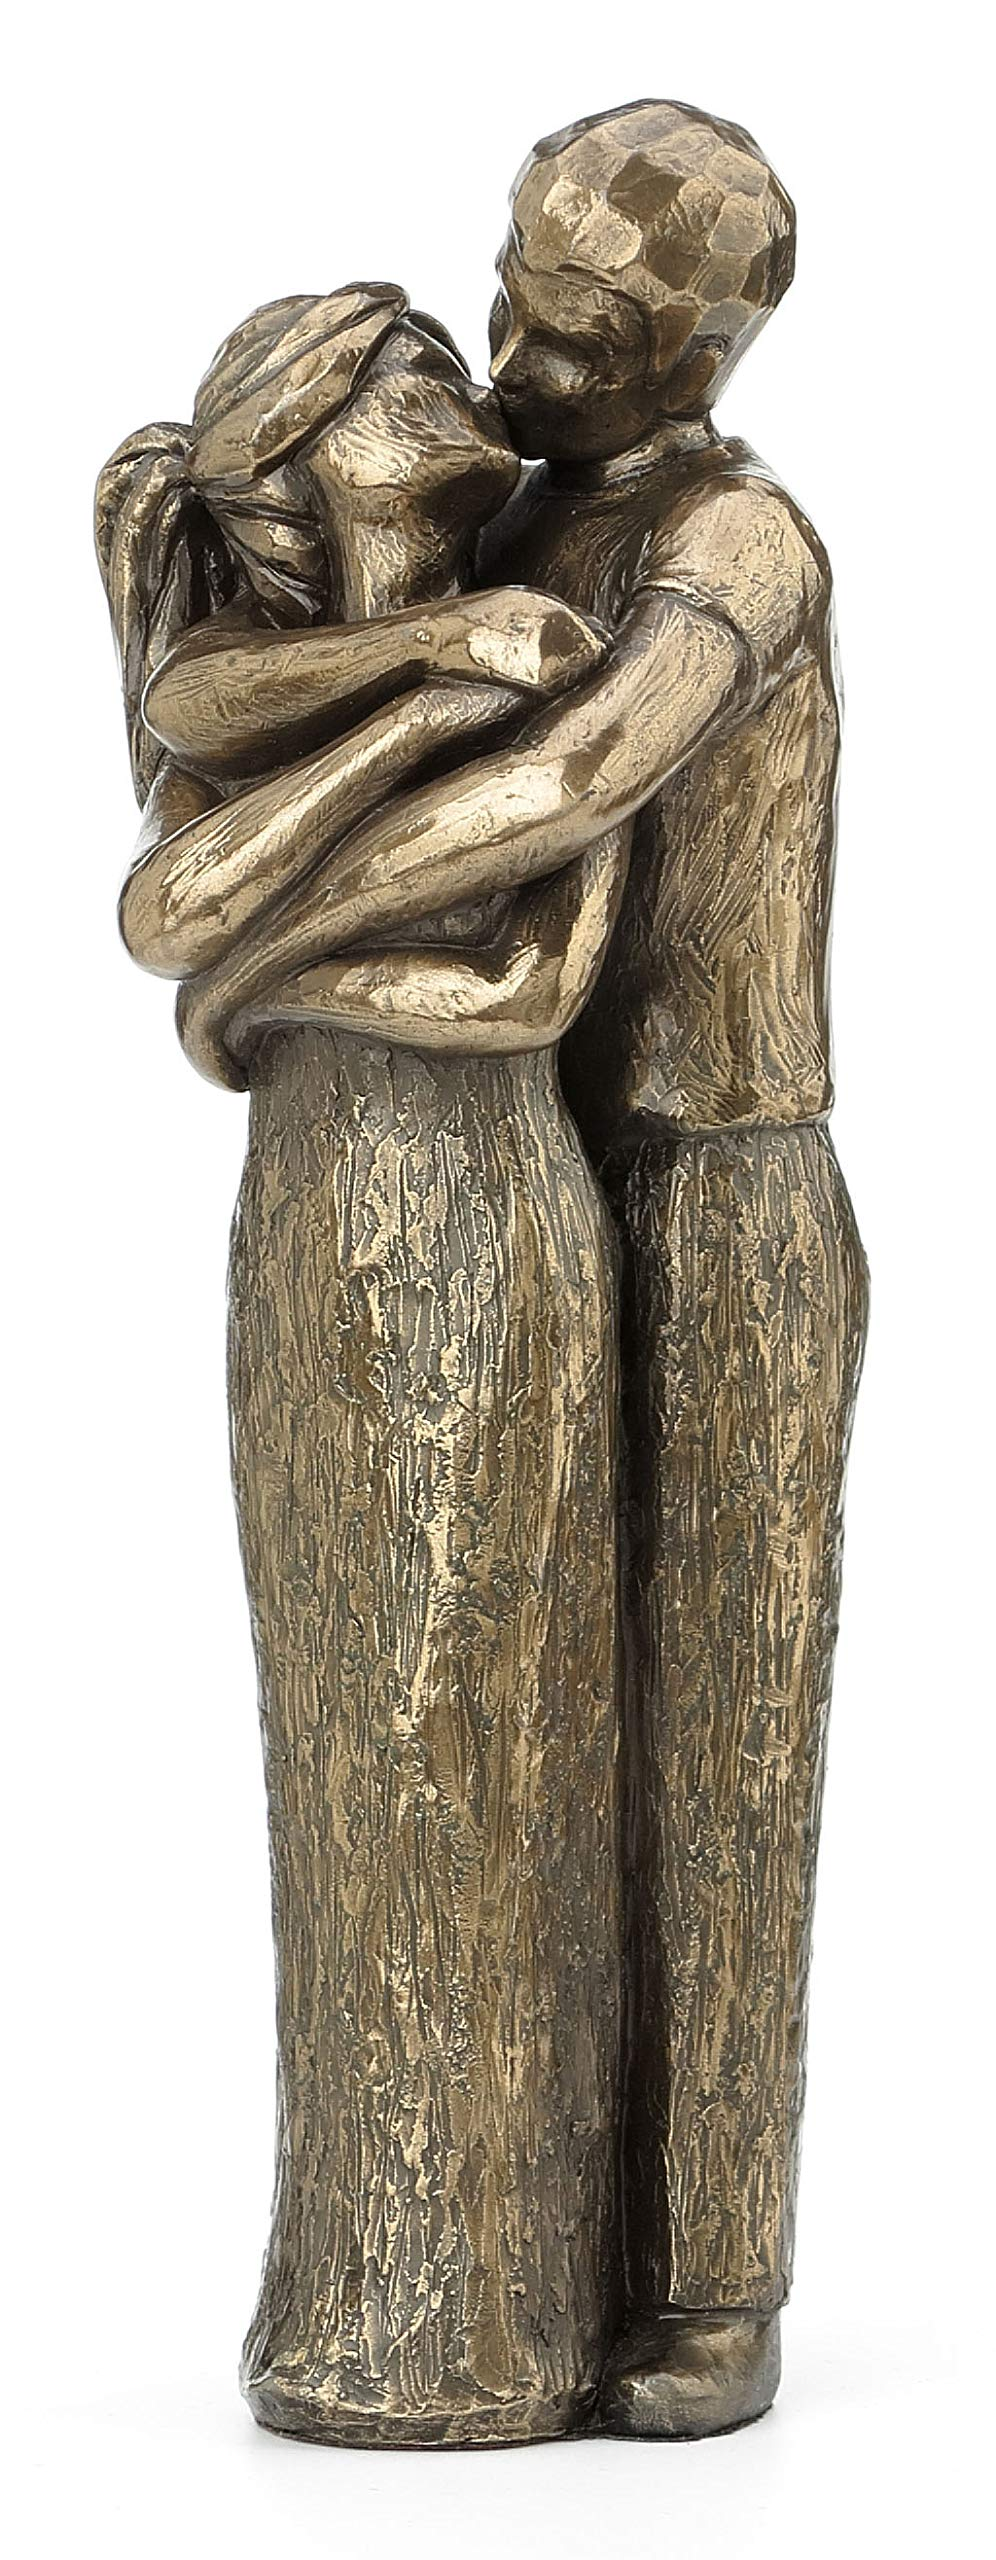 JFSM INC Soulmates Lovers Kissing Sculpture - Perfect Wedding by JFSM INC